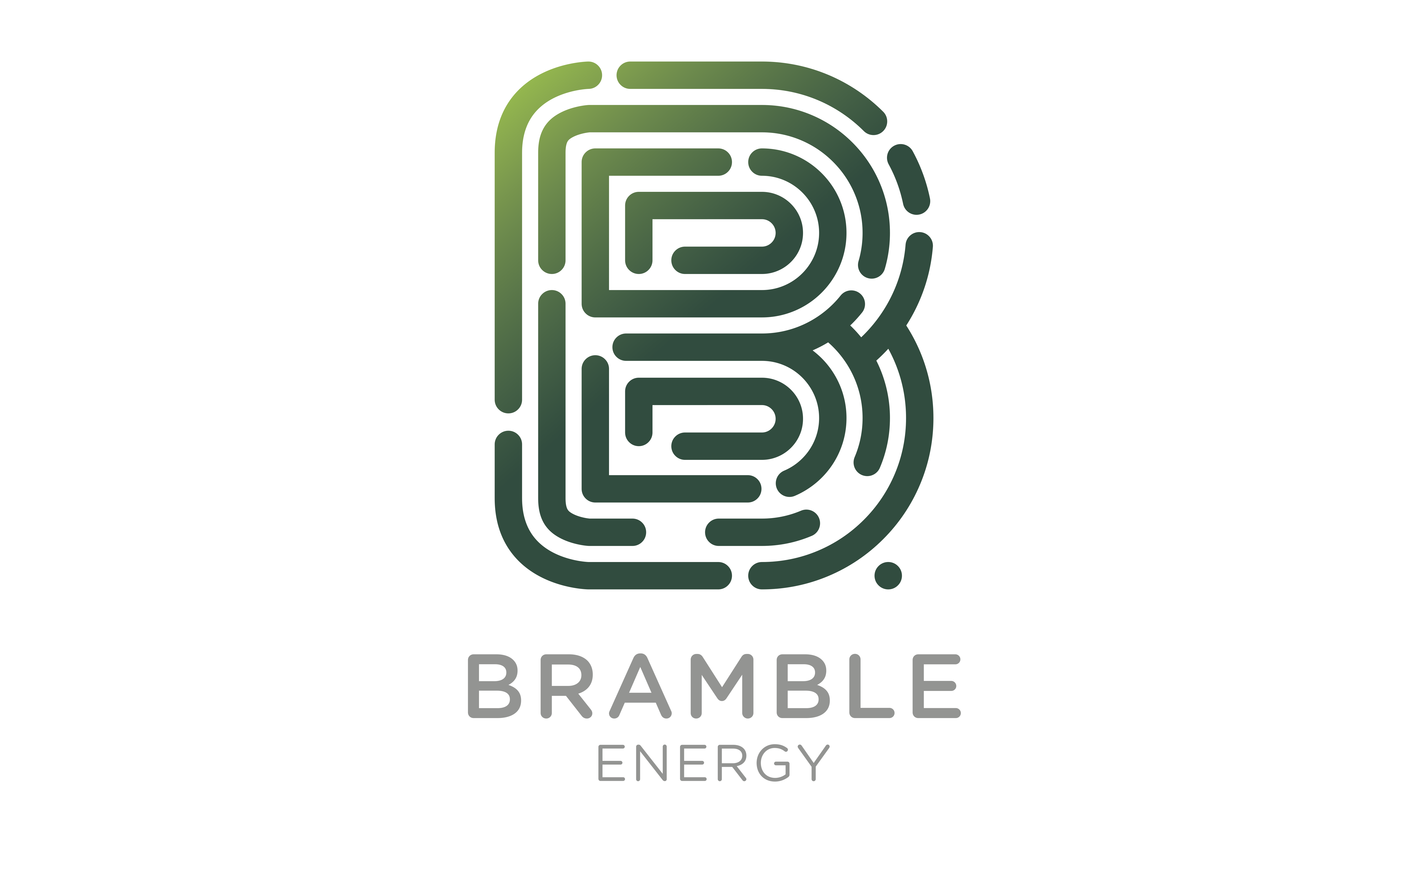 Bramble Energy Ltd